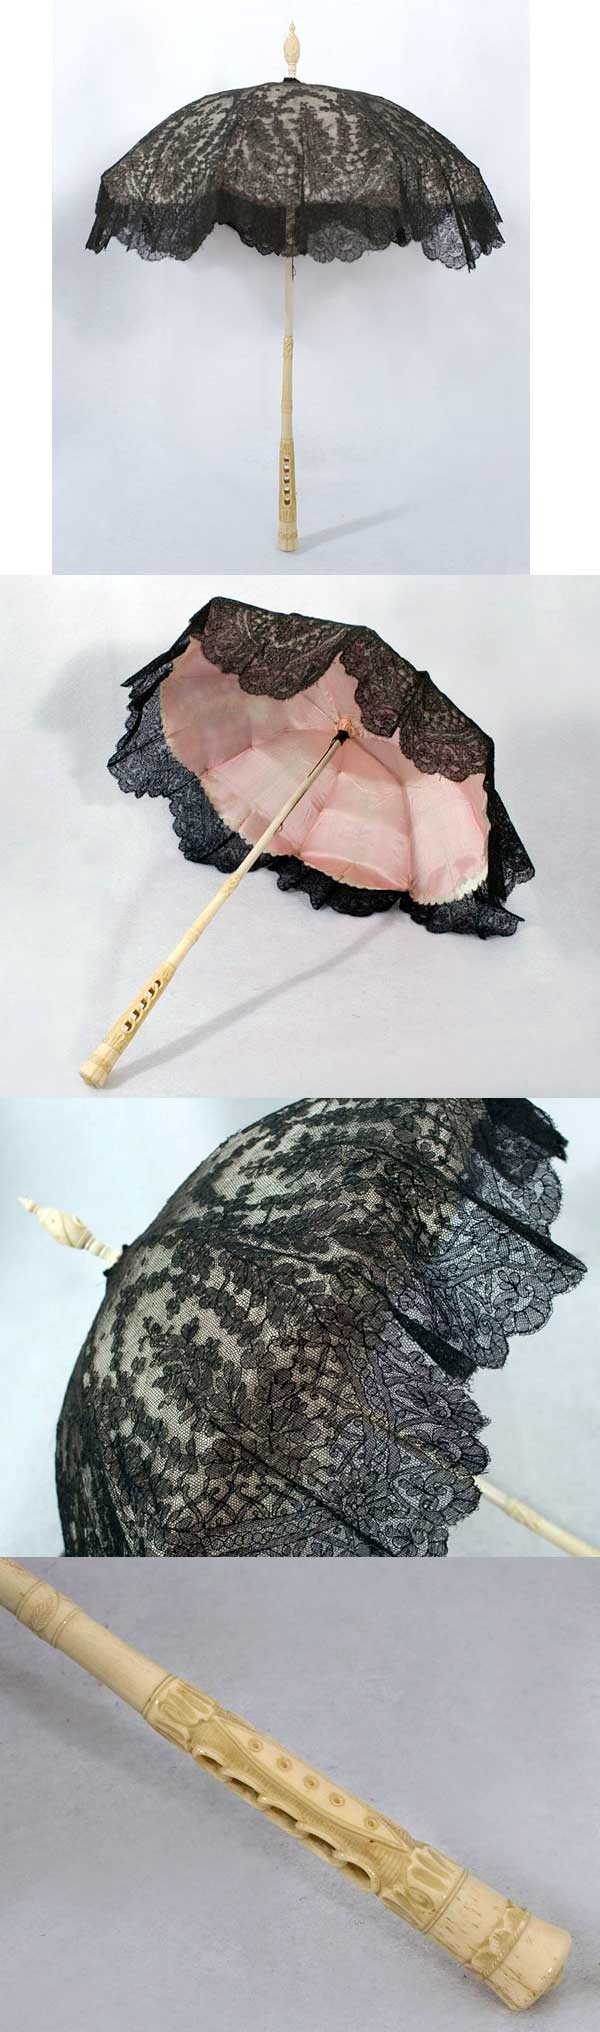 """Black Chantilly lace parasol with carved ivory handle, 1860s. 25"""" high and ~20"""" wide when opened."""